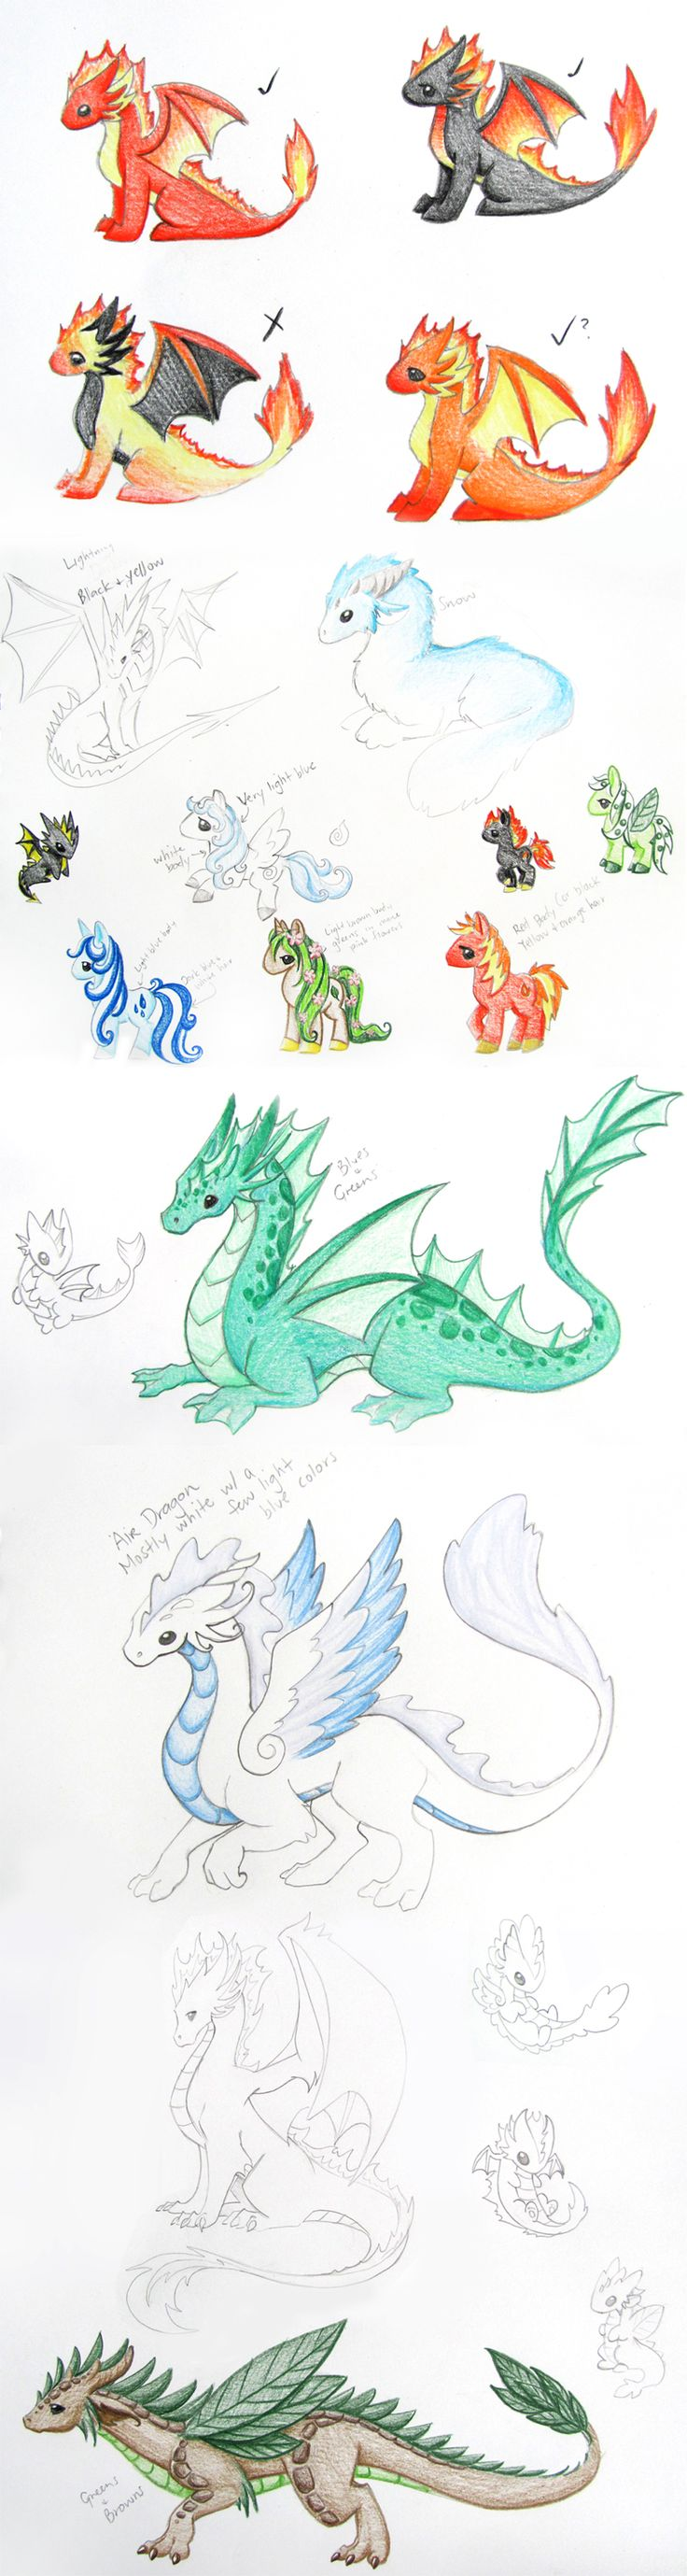 Elemental Concepts by *DragonsAndBeasties on deviantART